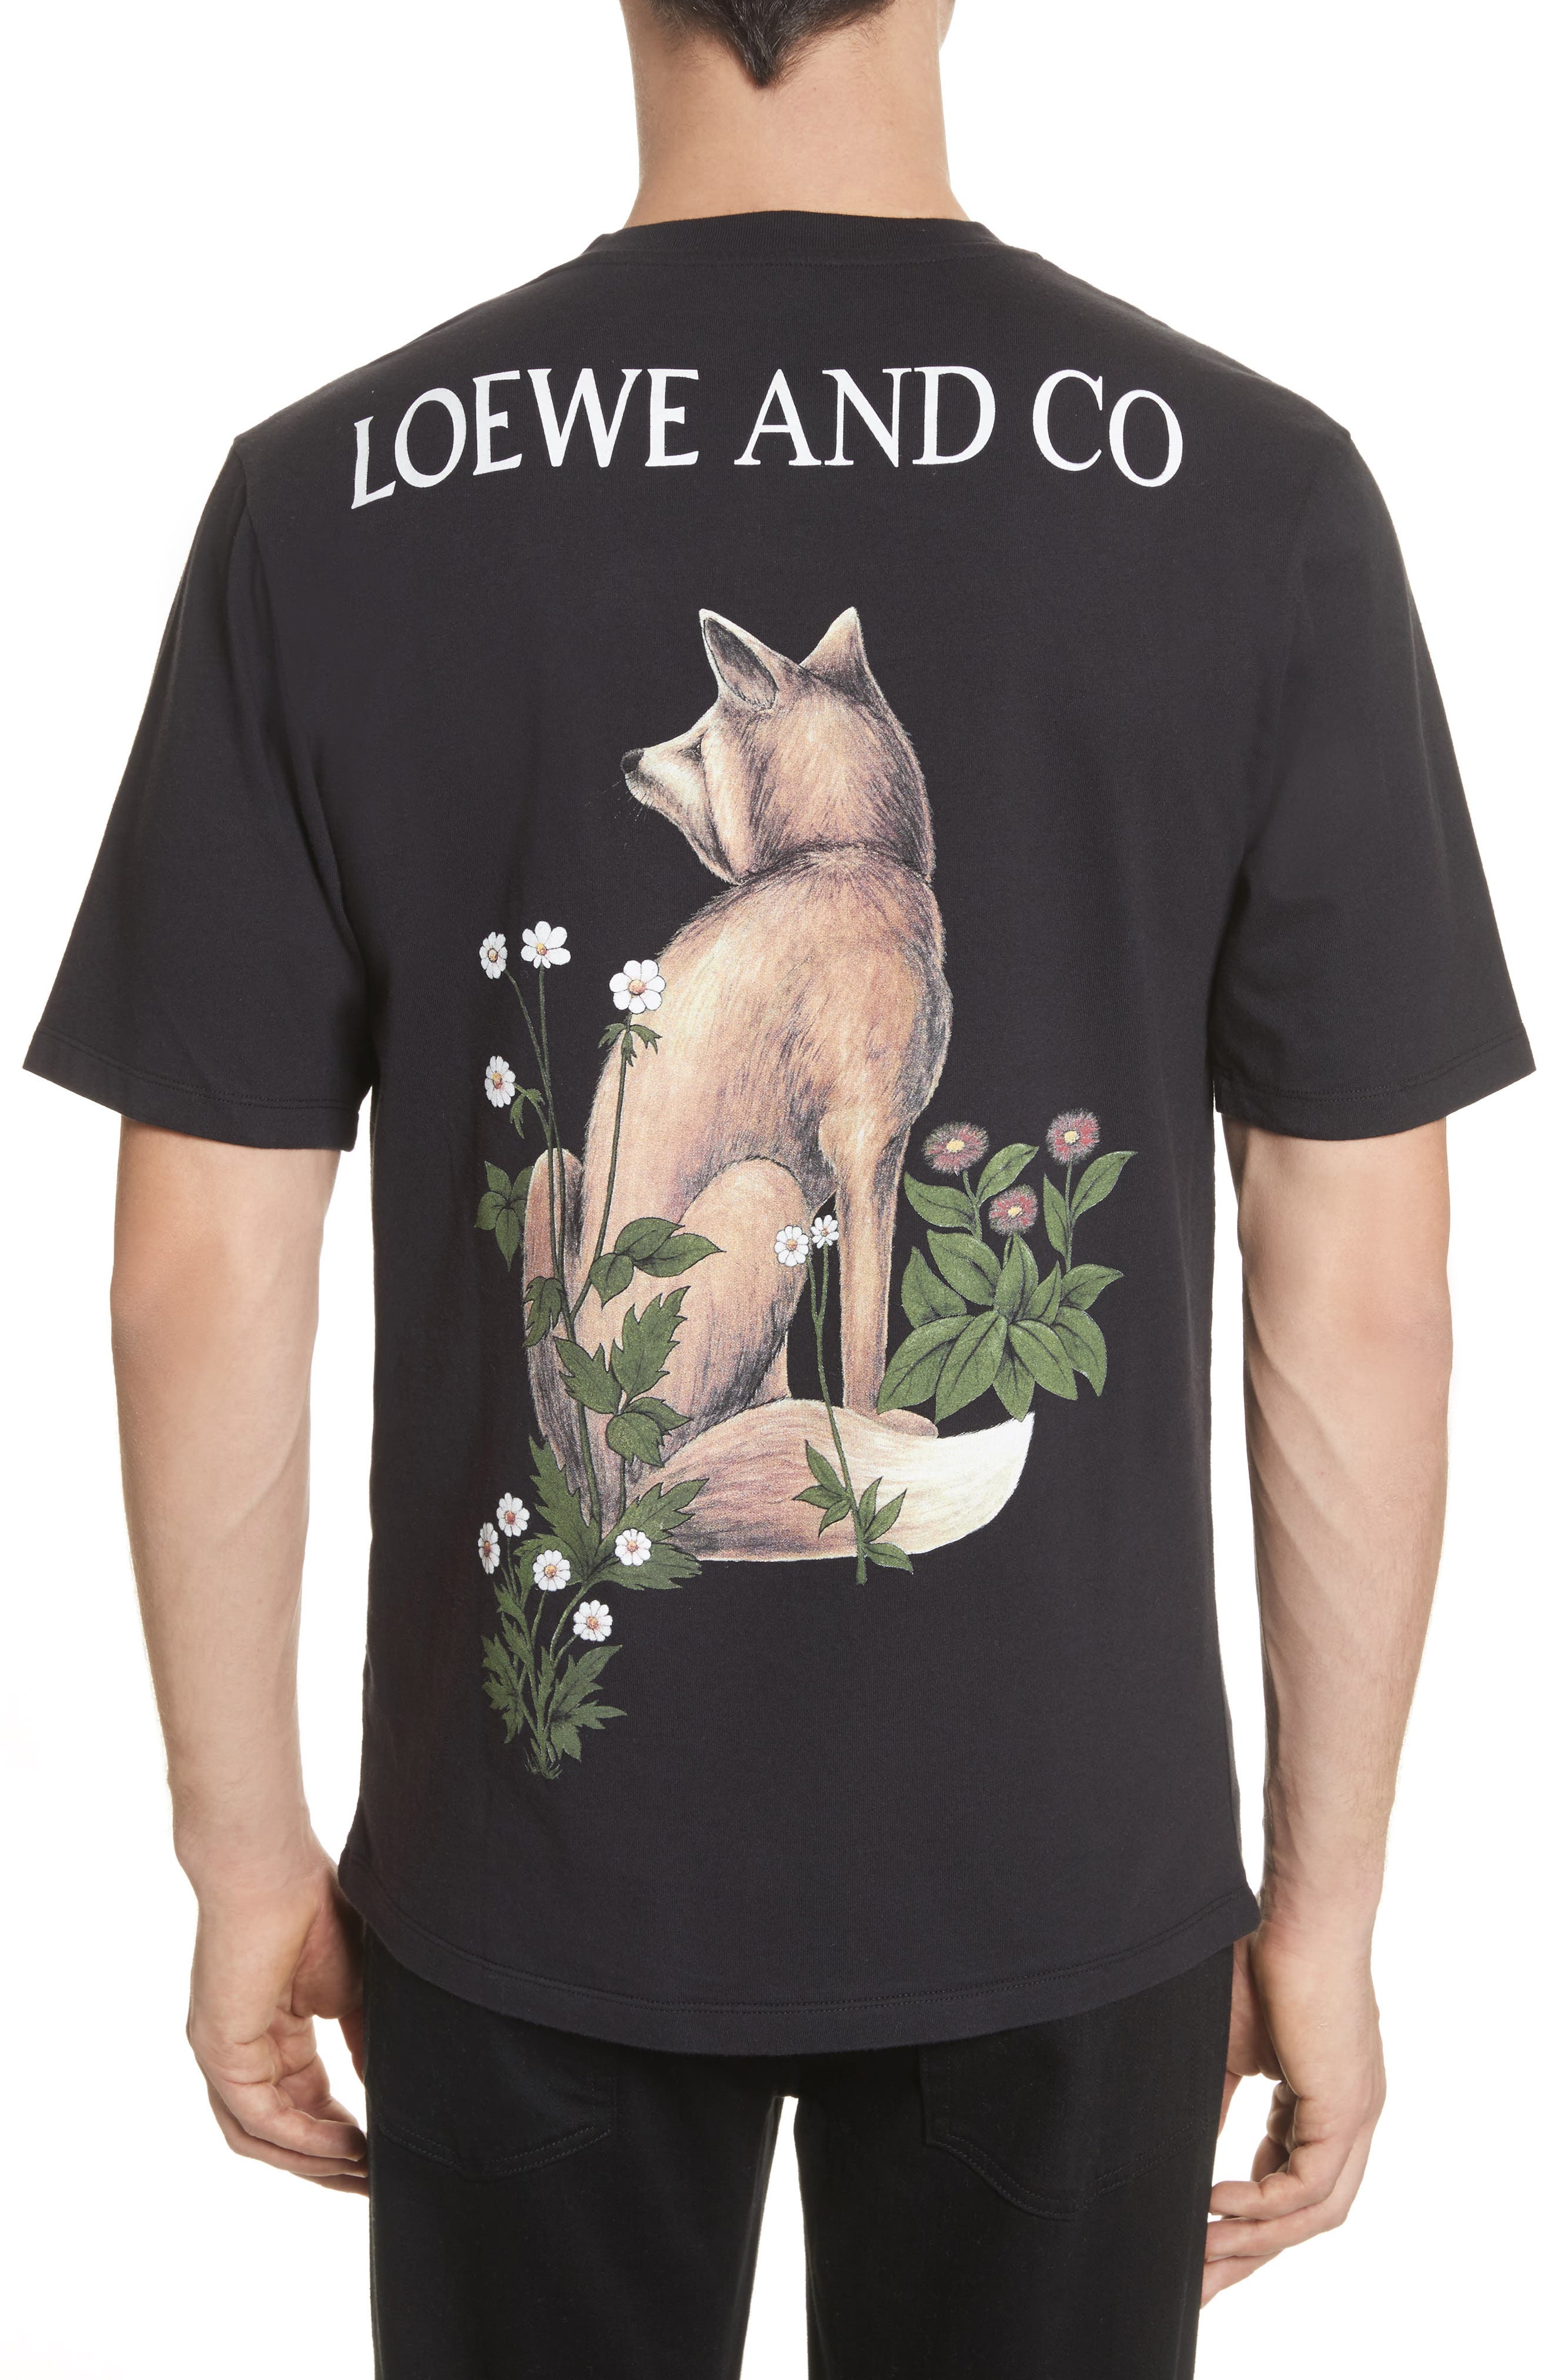 Loewe & Co. Graphic T-Shirt,                             Alternate thumbnail 2, color,                             Black